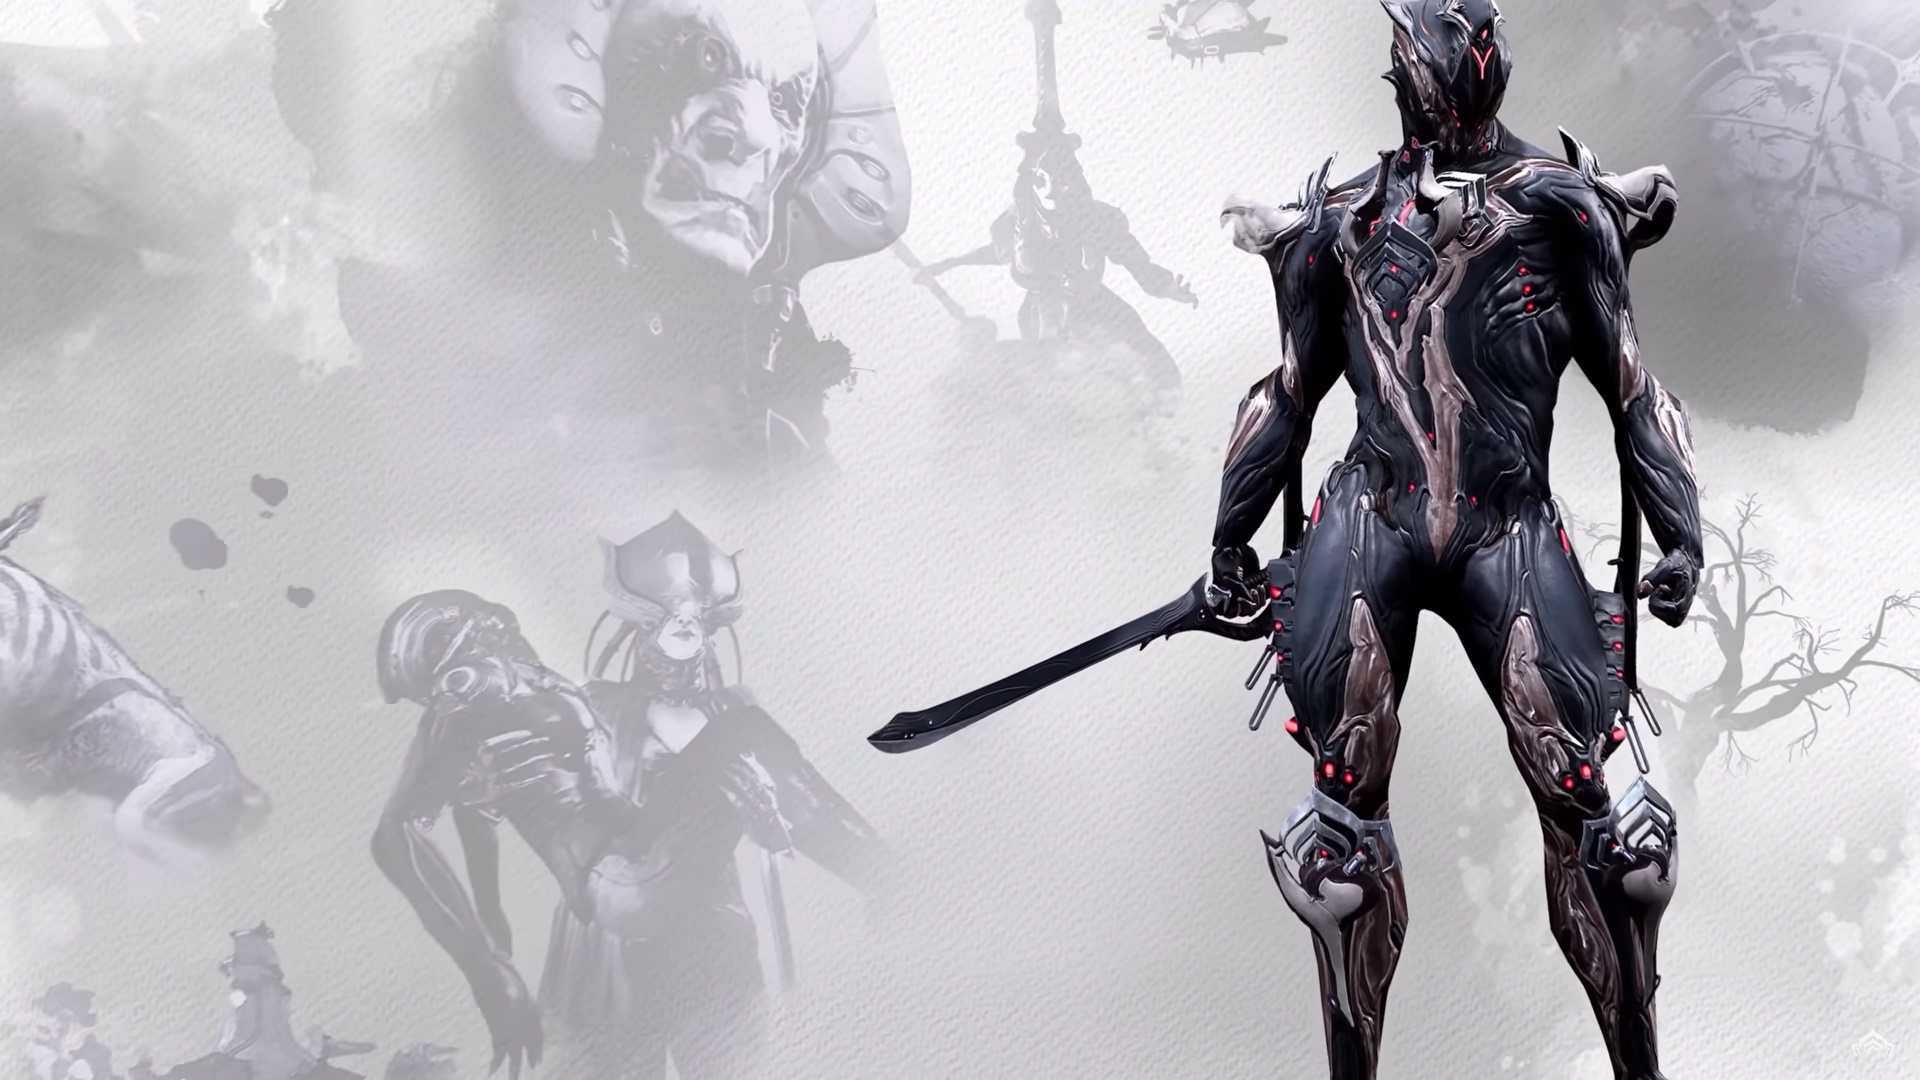 Warframe is offering a free special armor set for its 7th anniversary